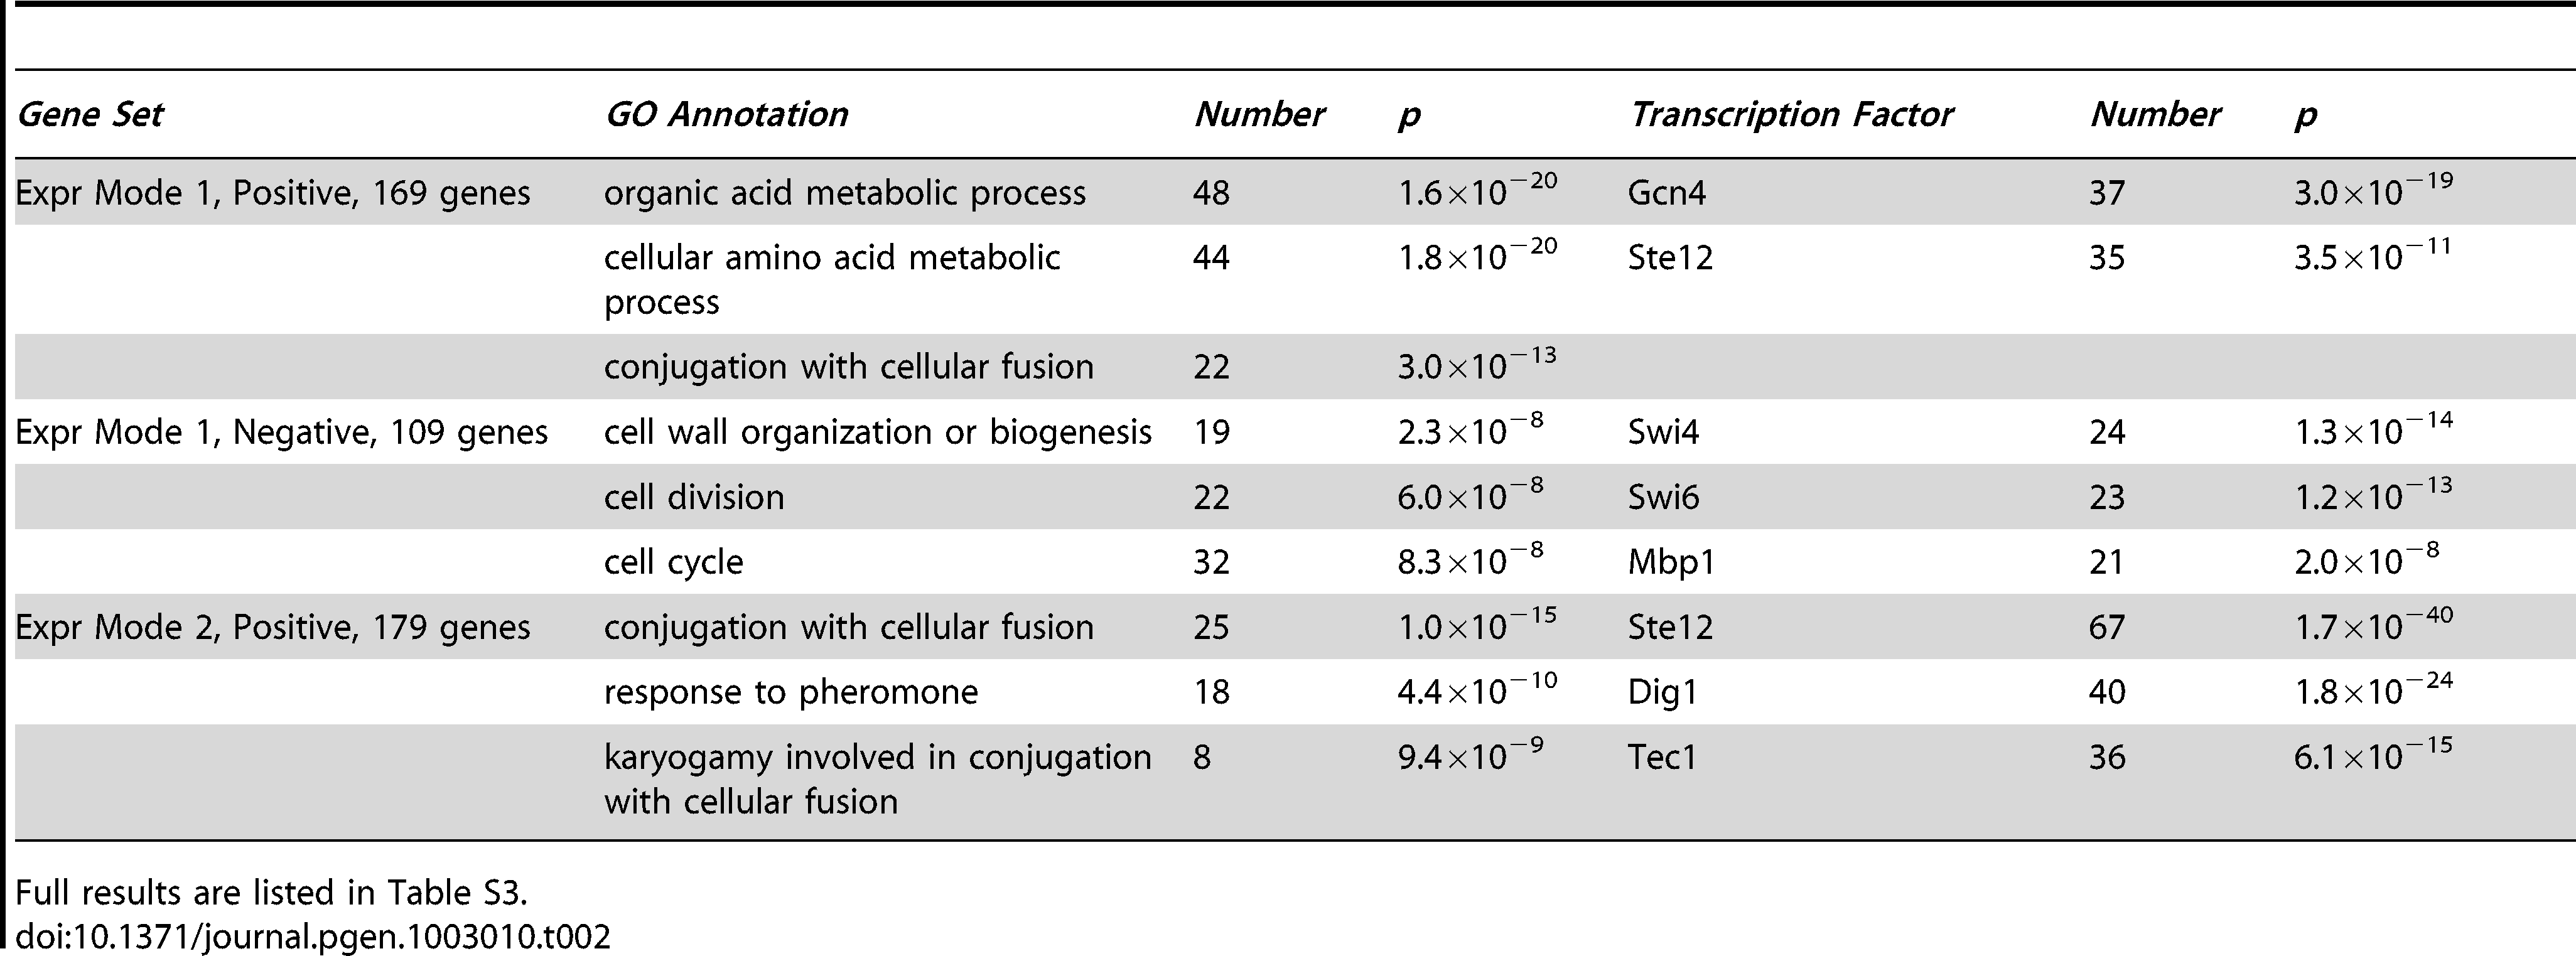 Summary of enriched functions and transcription factor binding targets for expression gene sets.